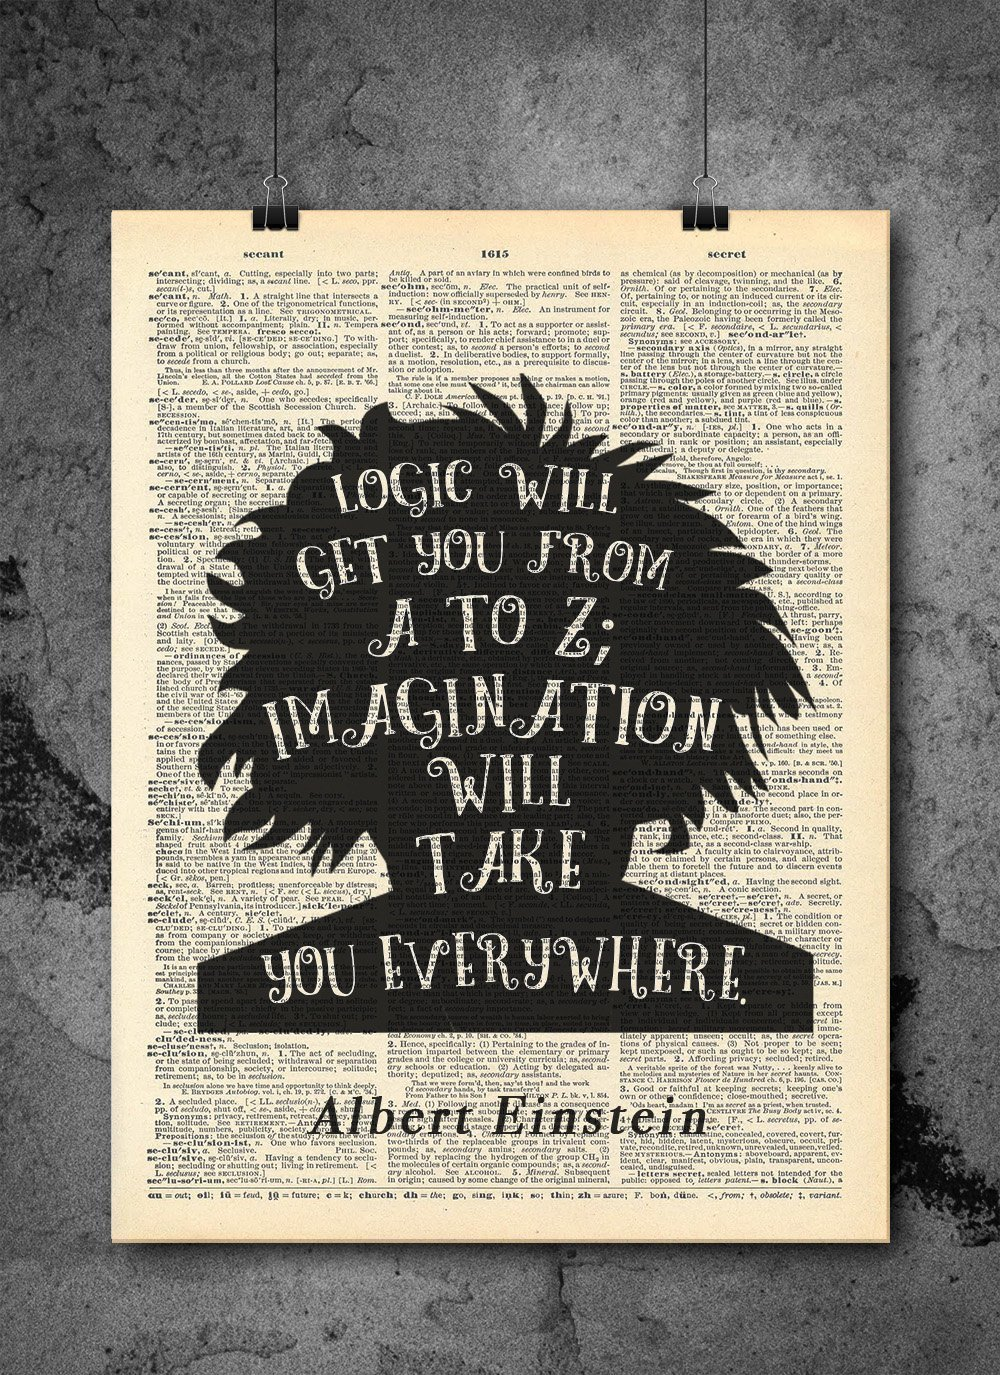 Albert Einstein Quote - Imagination - Vintage Dictionary Print 8x10 inch Home Vintage Art Abstract Prints Wall Art for Home Decor Wall Decorations For Living Room Bedroom Office Ready-to-Frame